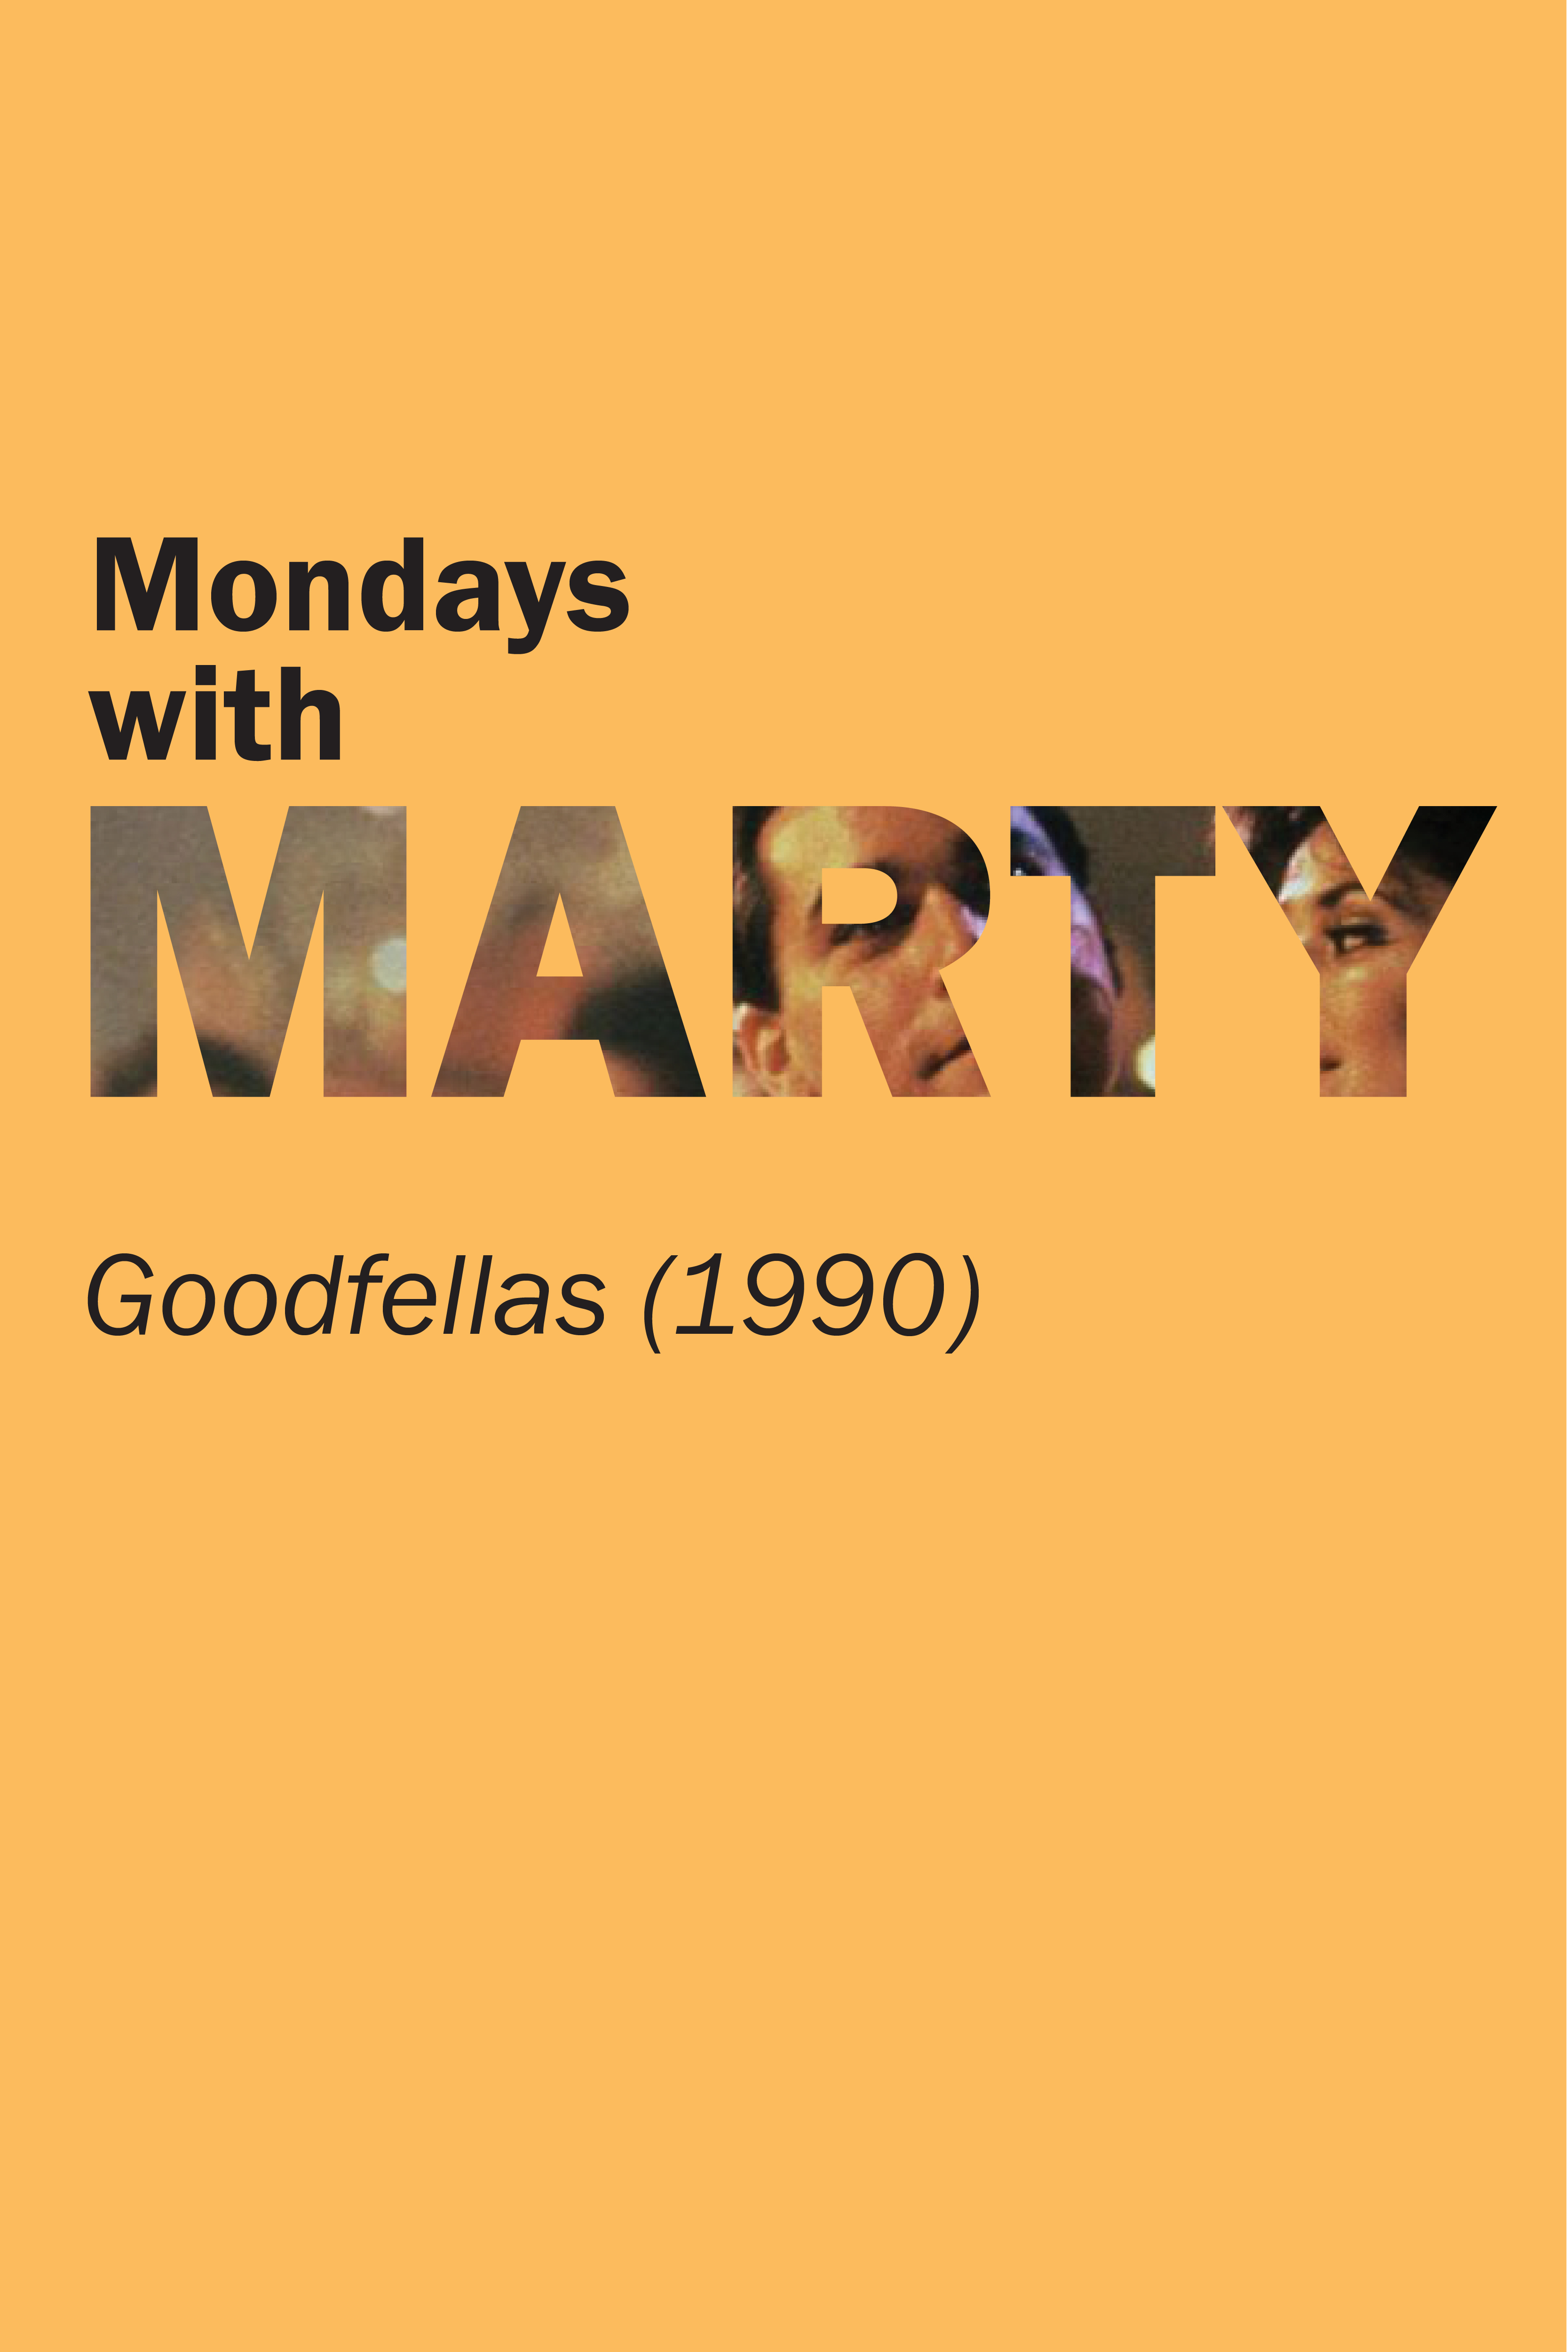 Poster for GoodFellas (1990)